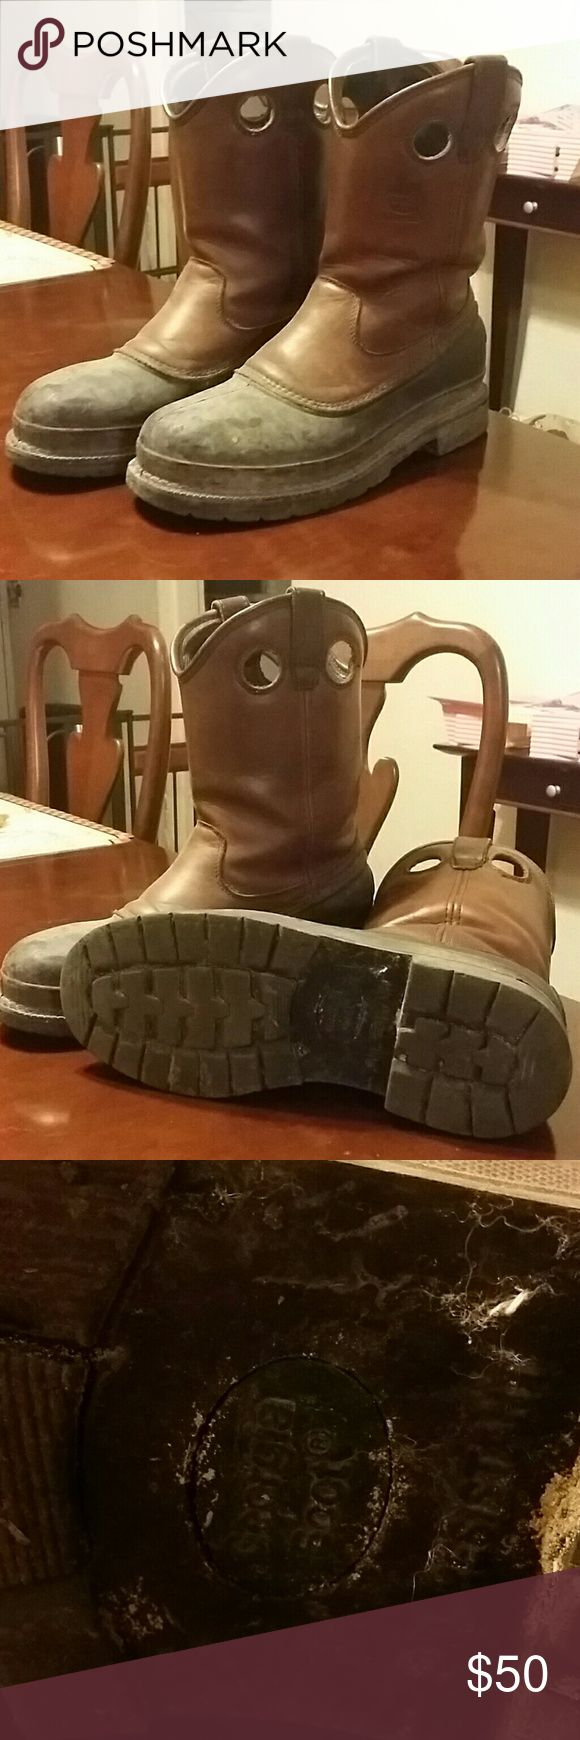 Men's Steel Toe Muck Boots Men's Steel Toe Muck Boots. Size 11M. Really great condition. Made by Georgia Boots. Will consider all offers. Georgia Boots Shoes